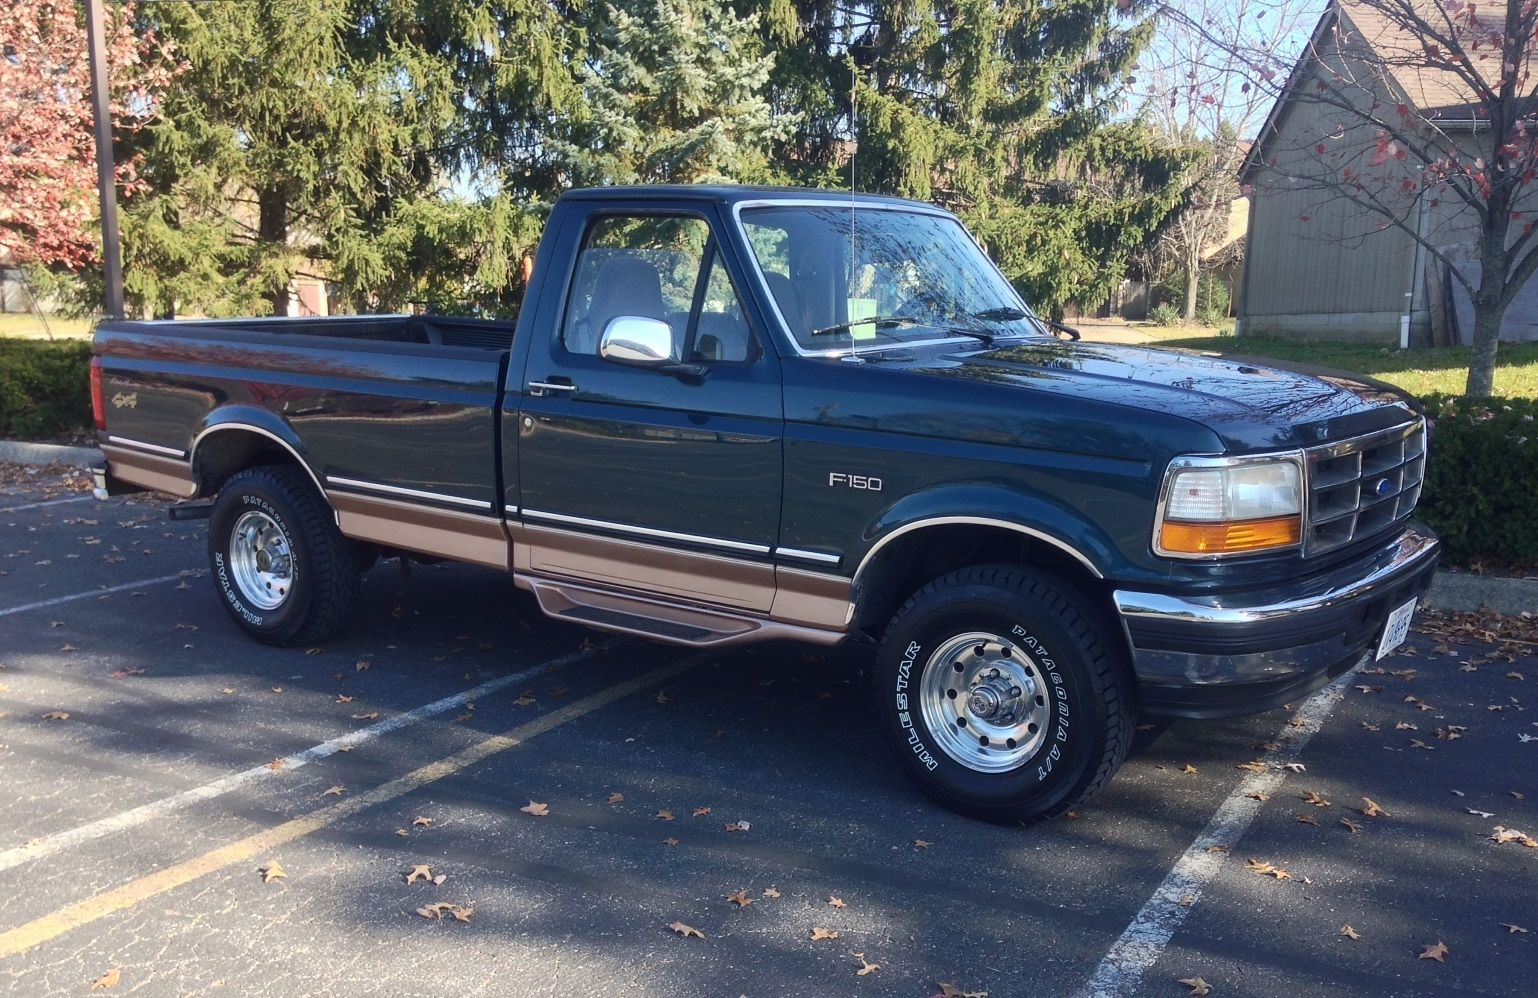 Awesome 1995 Ford F 150 Eddie Bauer 1995 Ford F150 4x4 Eddie Bauer Check More At Http Harmonisproduction Com 1995 For Ford Trucks Ford Truck 1995 Ford F150